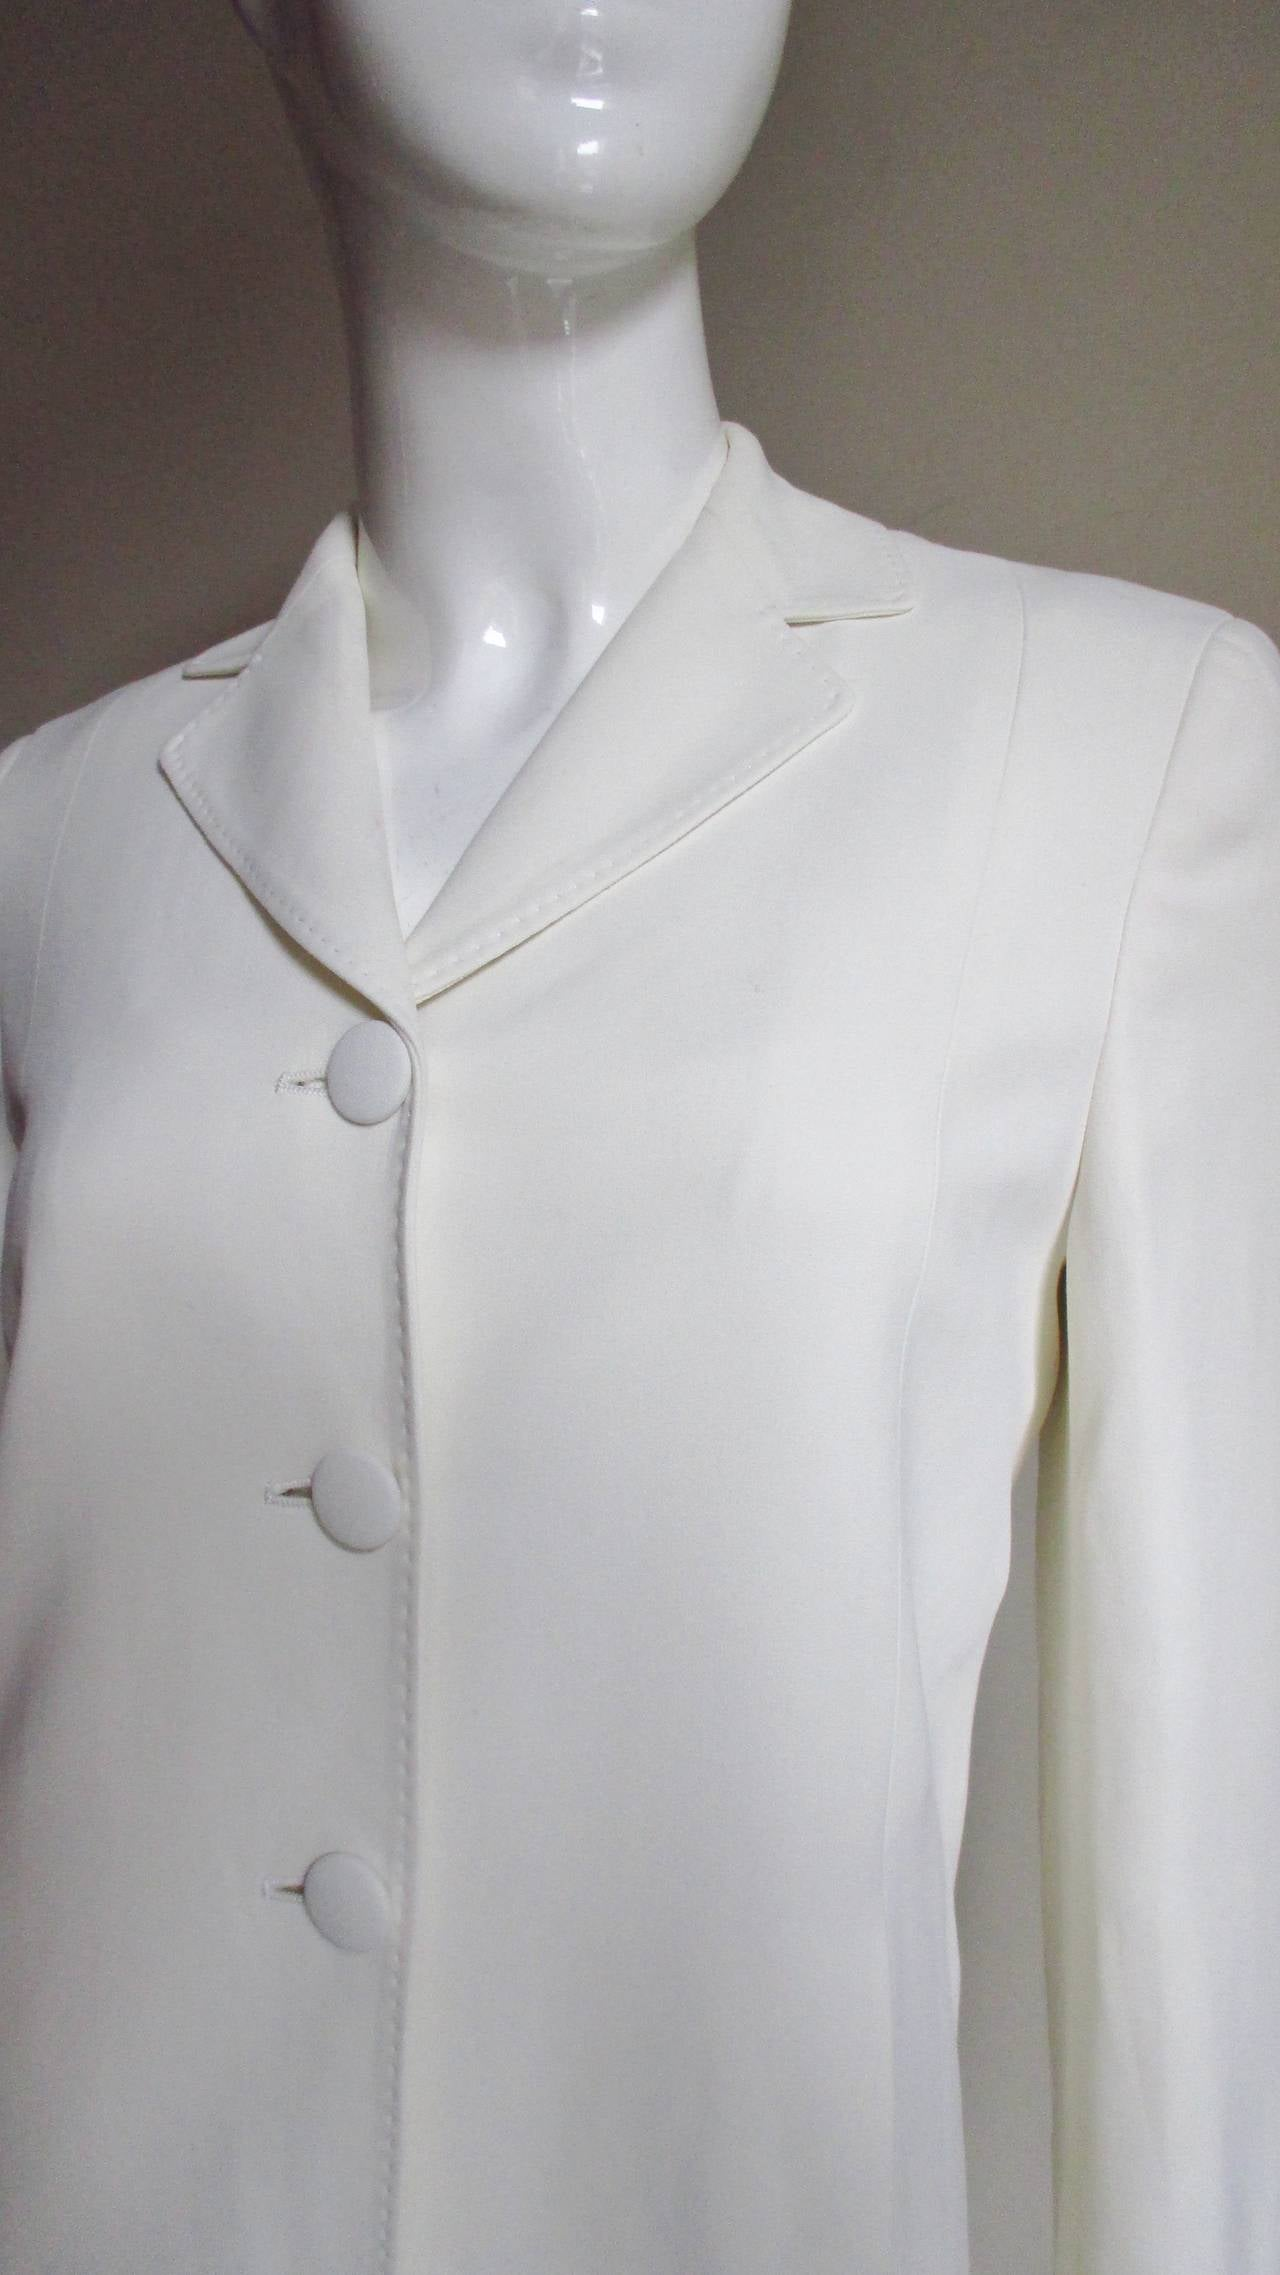 "Moschino Couture "" It's all so simple "" Embroidered Dress & Coat In Excellent Condition For Sale In New York, NY"